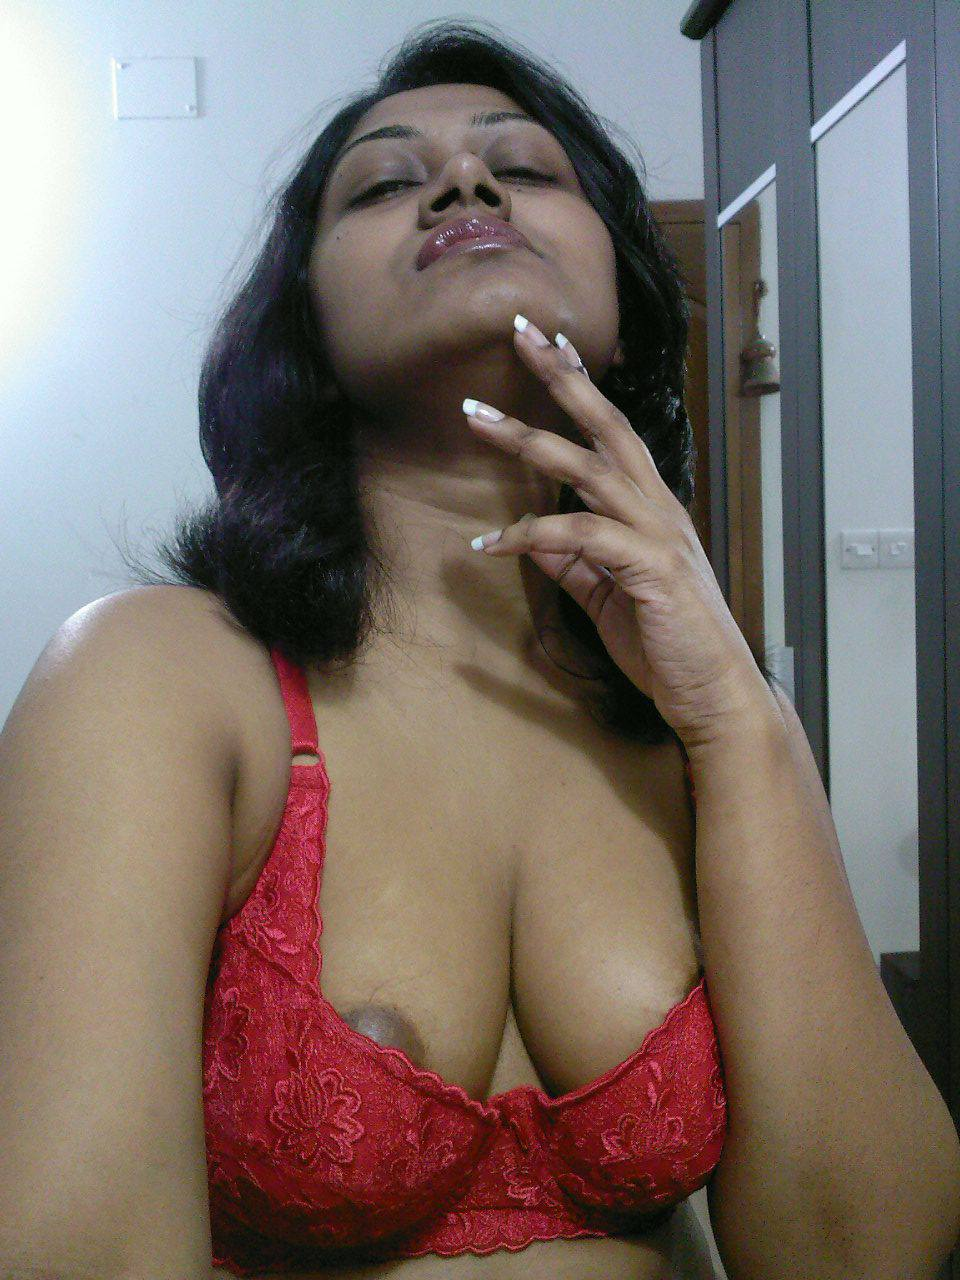 mordendotilcuore: big boobs indian aunty selfshot - desi indian